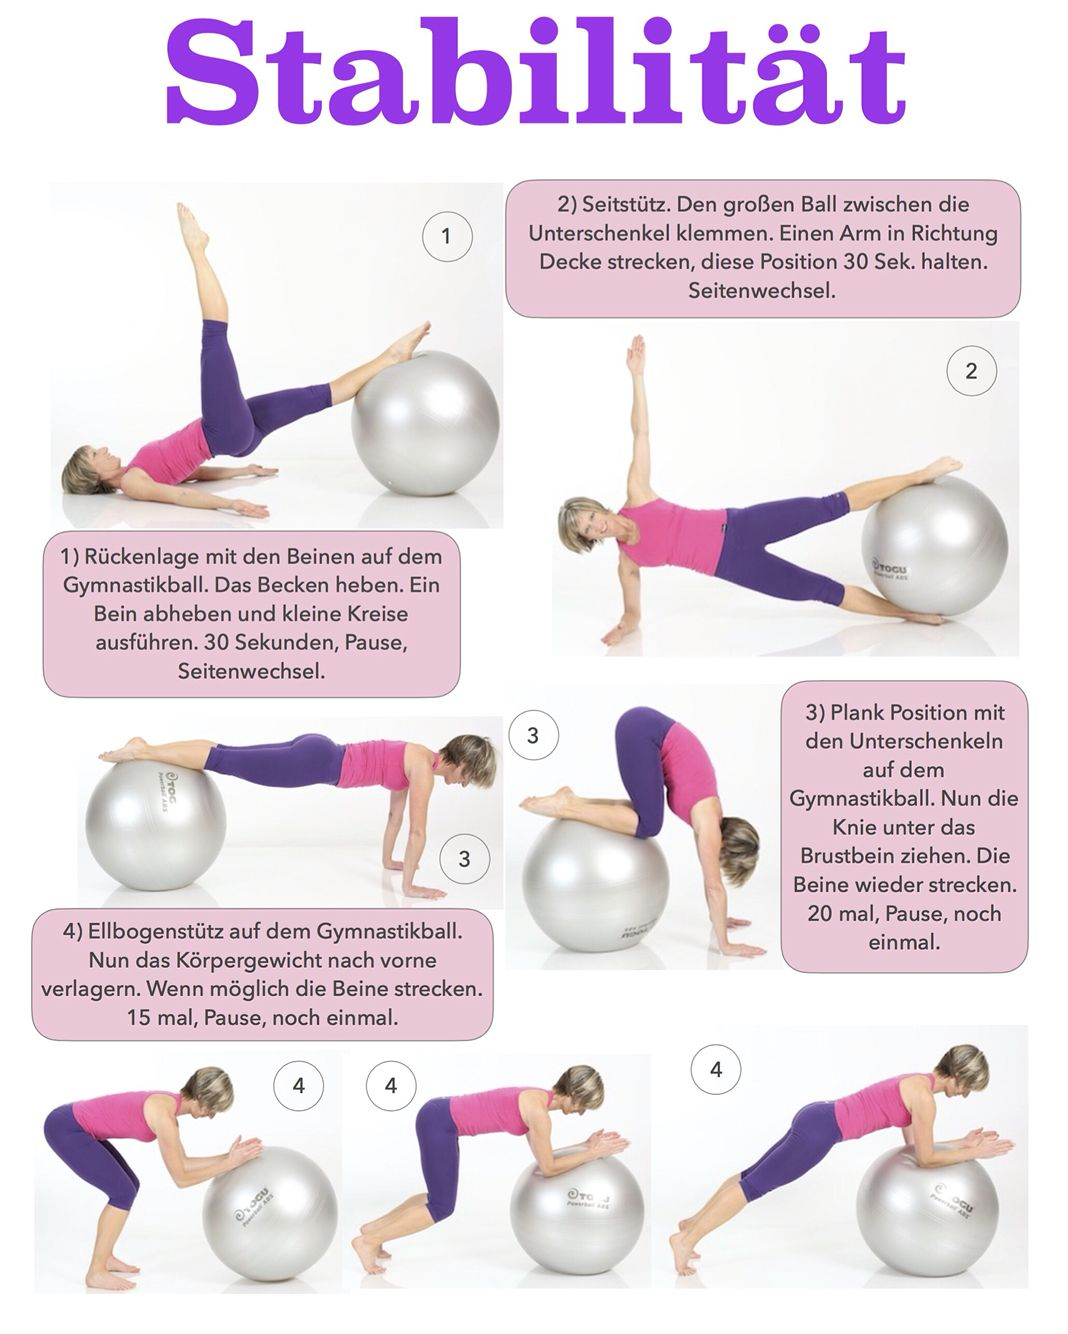 Pin by Gabi Fastner on Fitness | Gymnastikball training ...